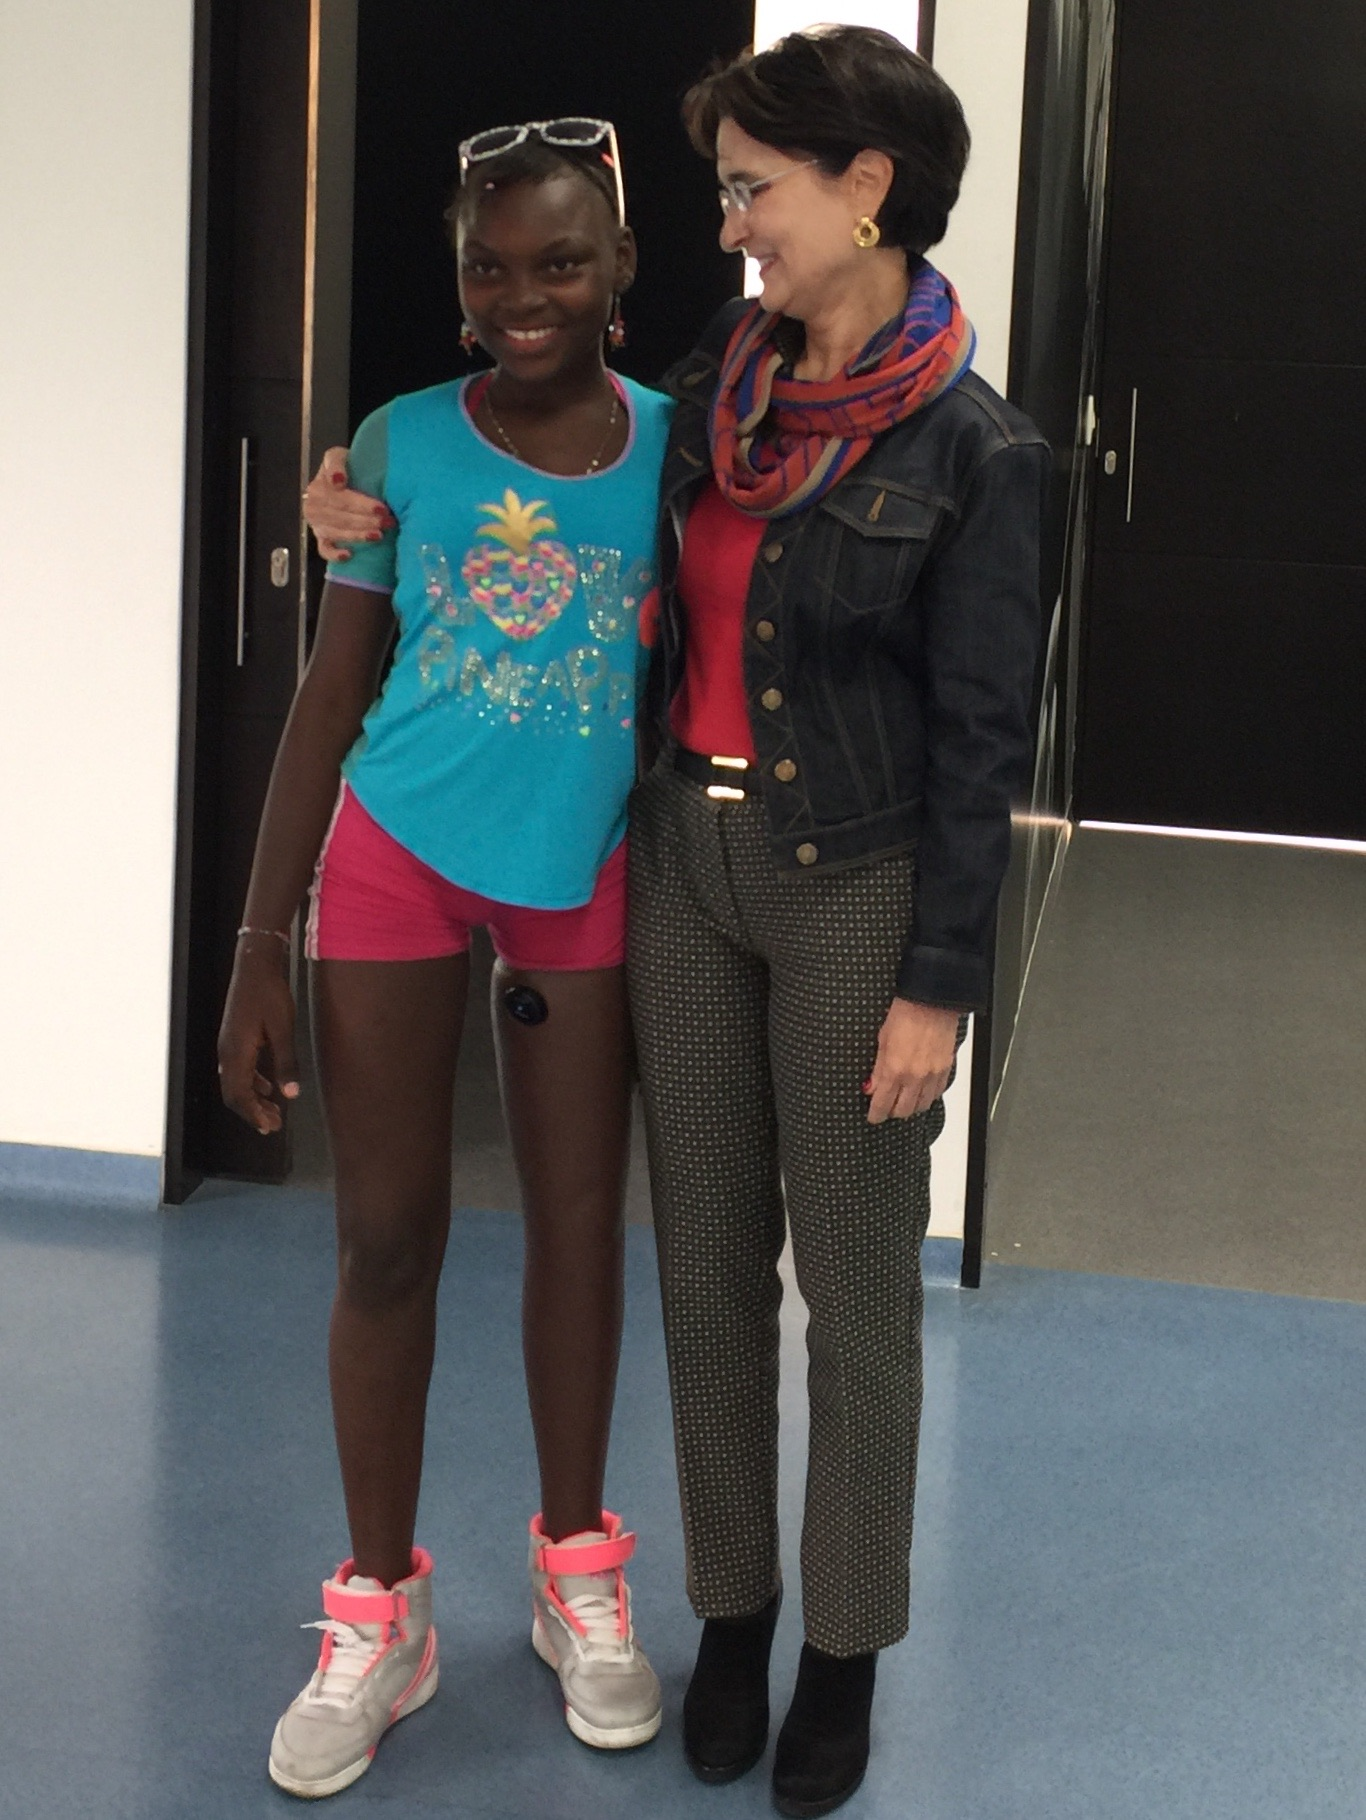 Gabriela Febres-Cordero with Lina Fernanda Angulo Congo, who lost her leg due to a stray bullet that reached her crib during a fight between the FARC and the military when she was just four months old.